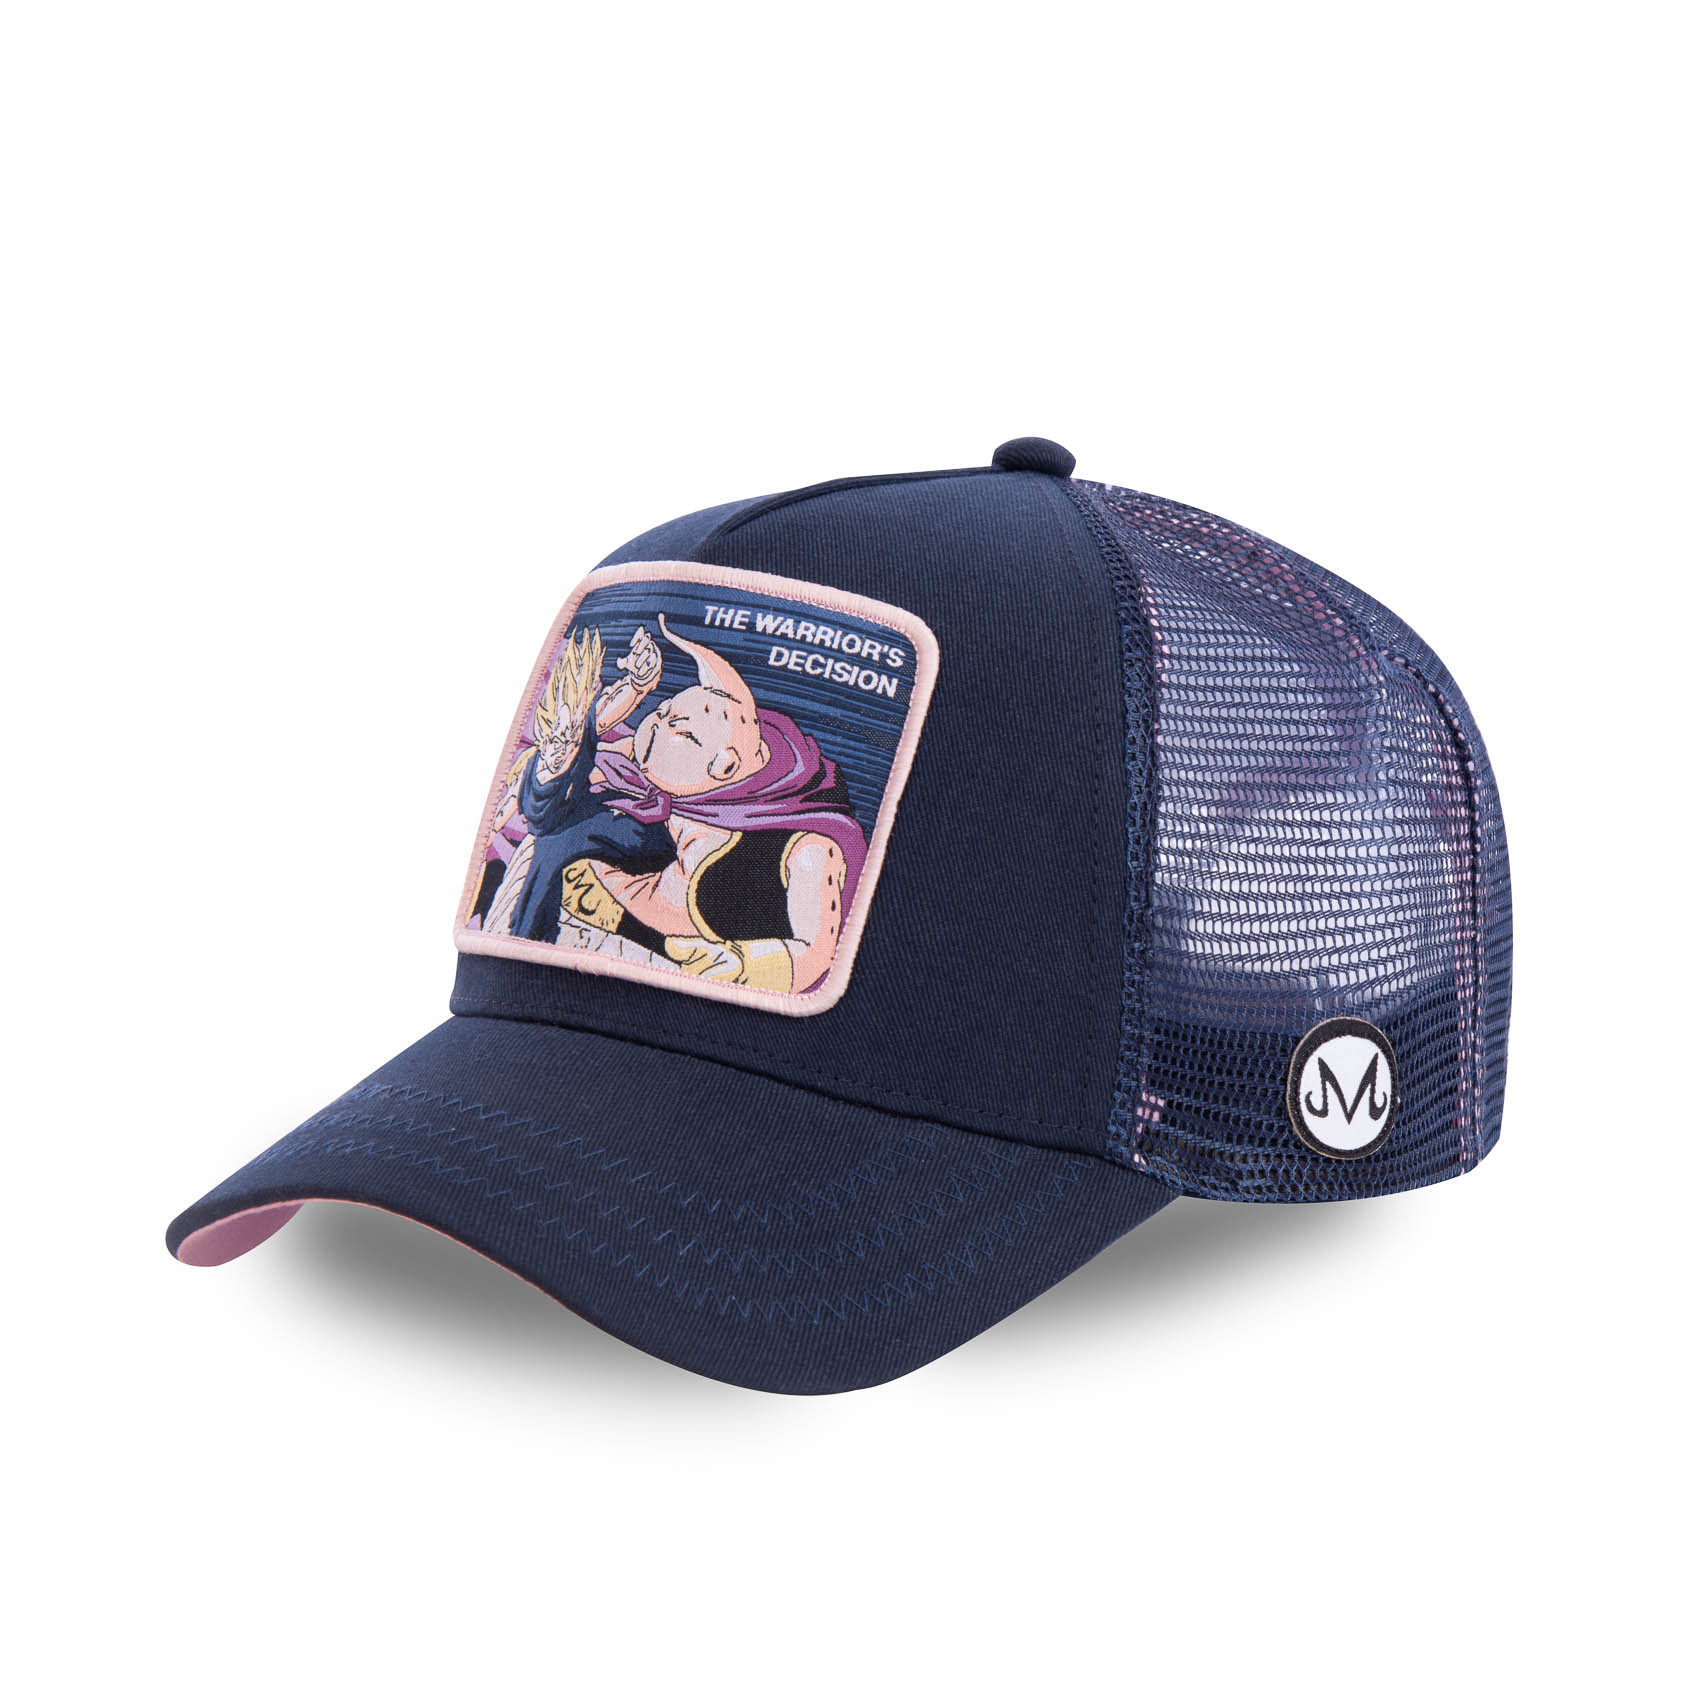 Casquette capslab dragon ball z decision bleu marine (photo)